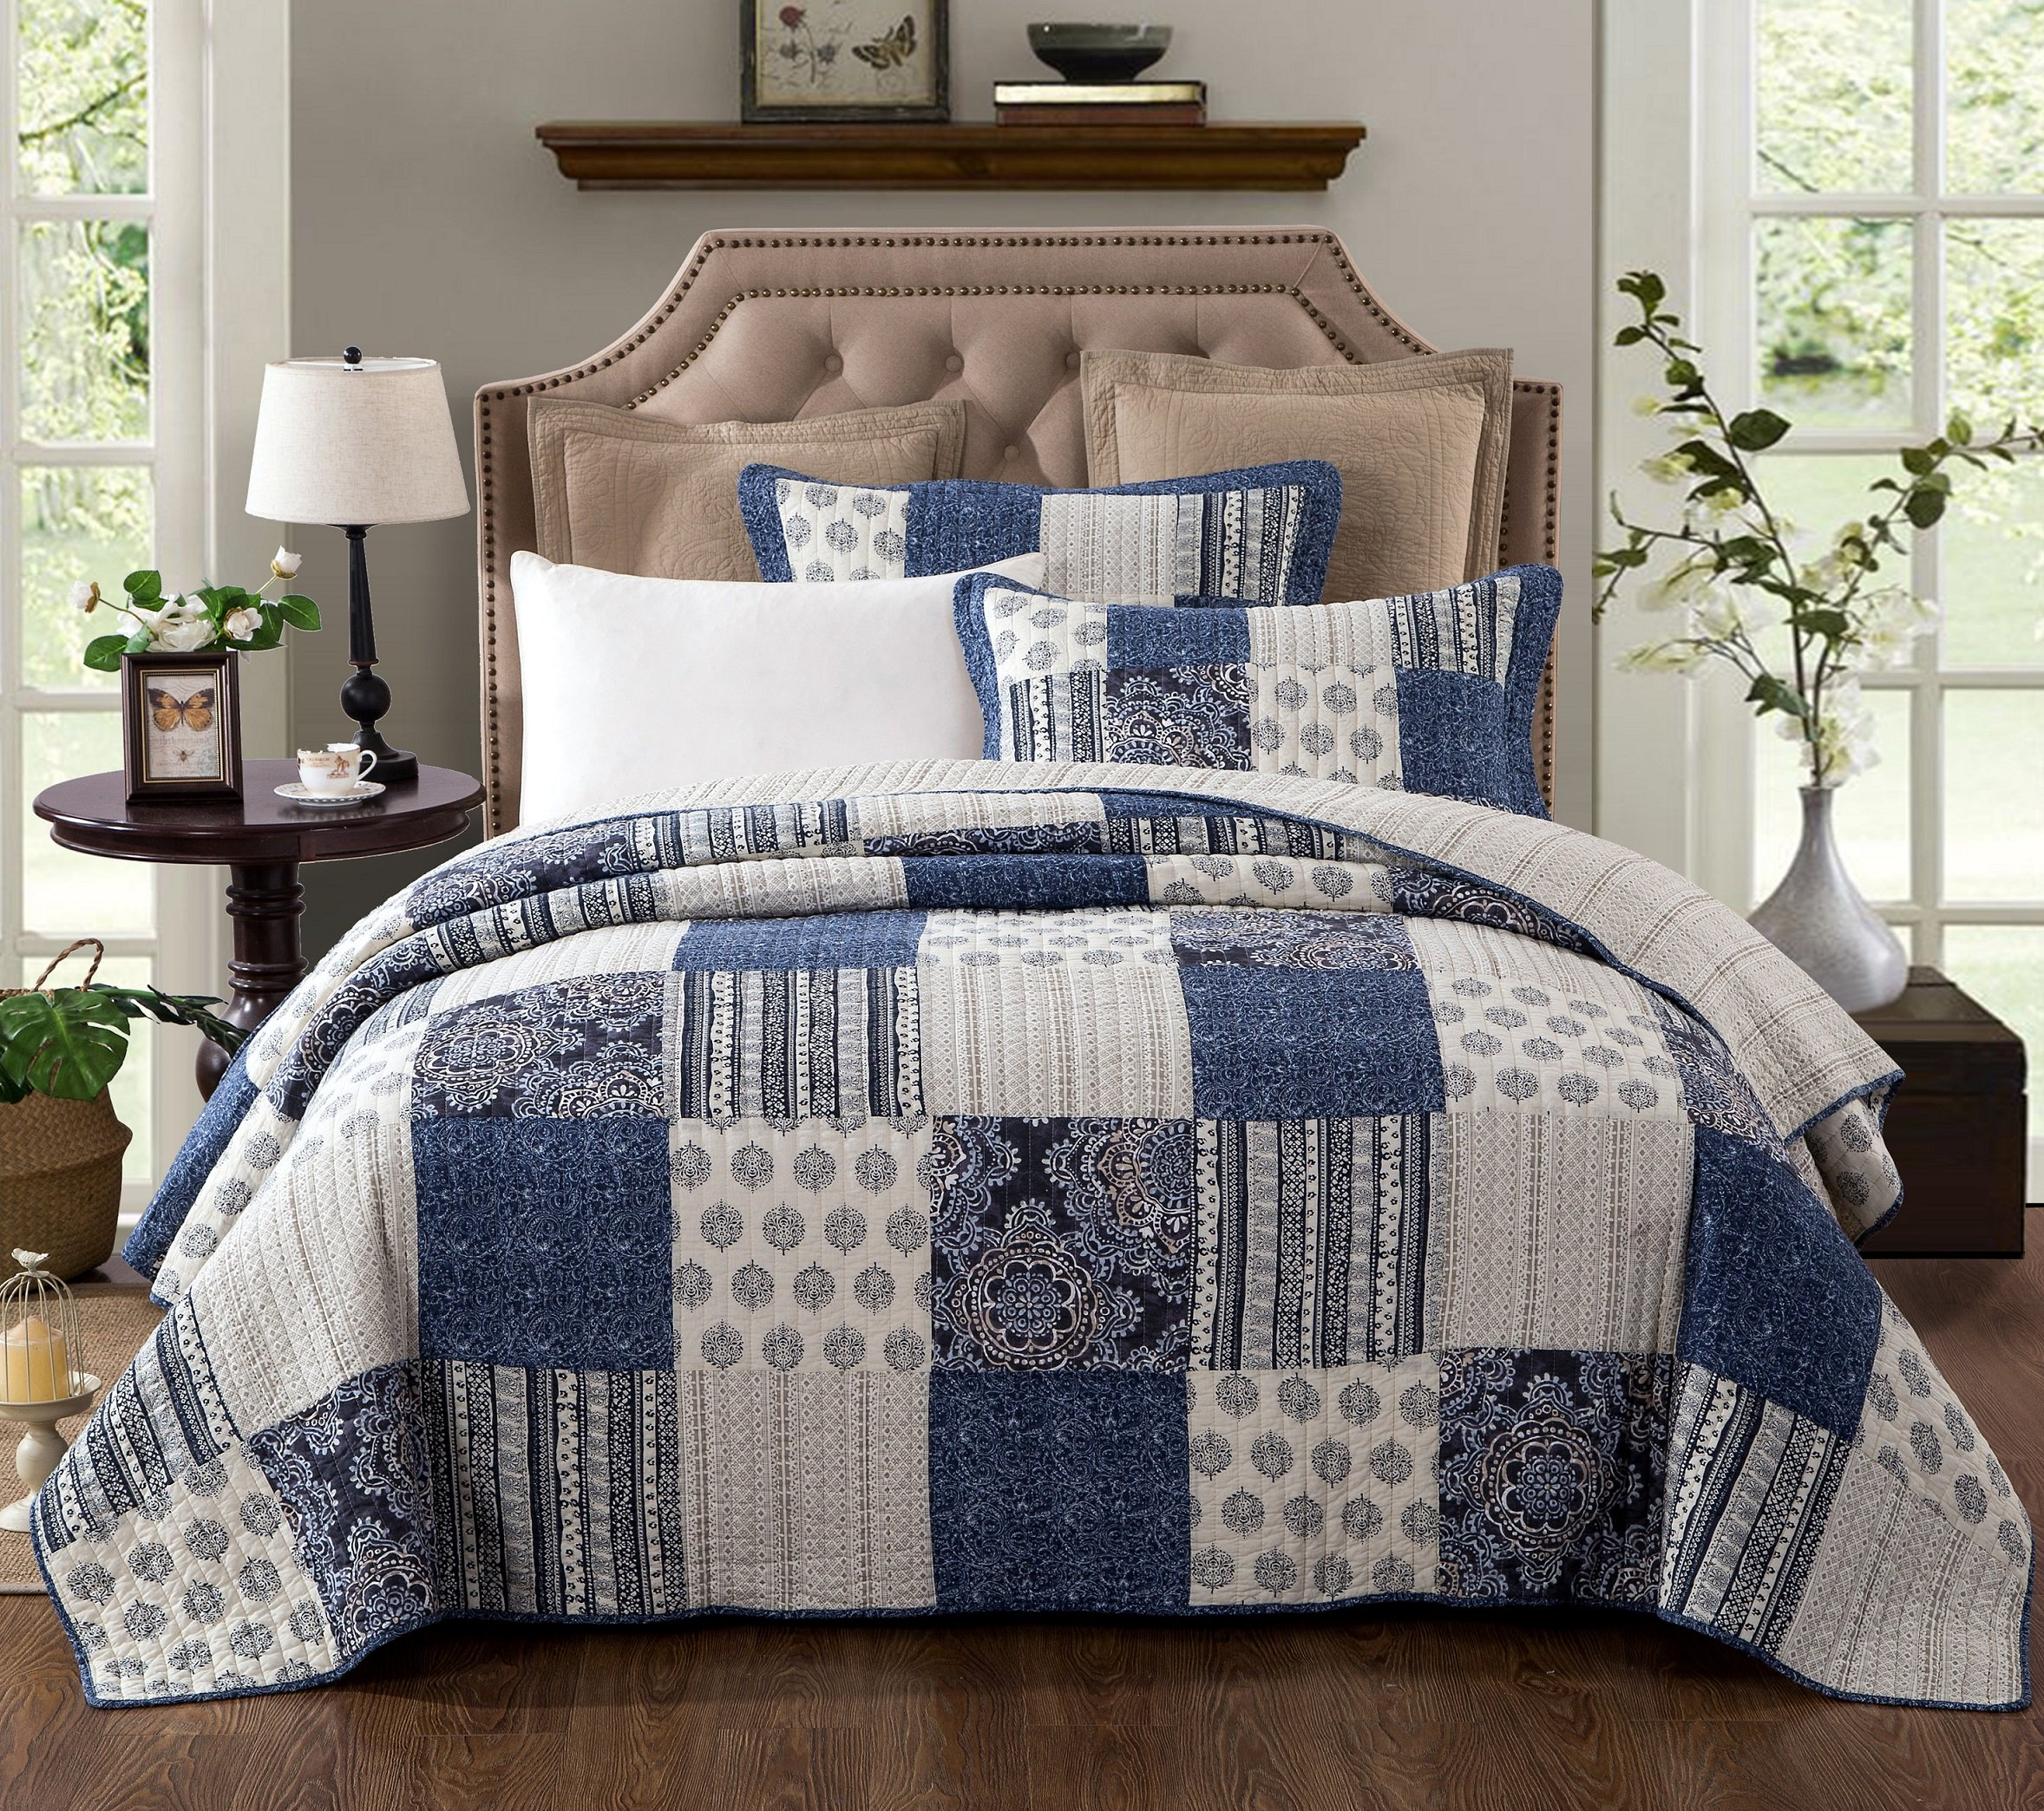 DaDa Bedding Patchwork Bedspread Set - Denim Blue Elegance Cotton Quilted - Bright Vibrant Multi Colorful Navy Floral - Full - 3-Pieces